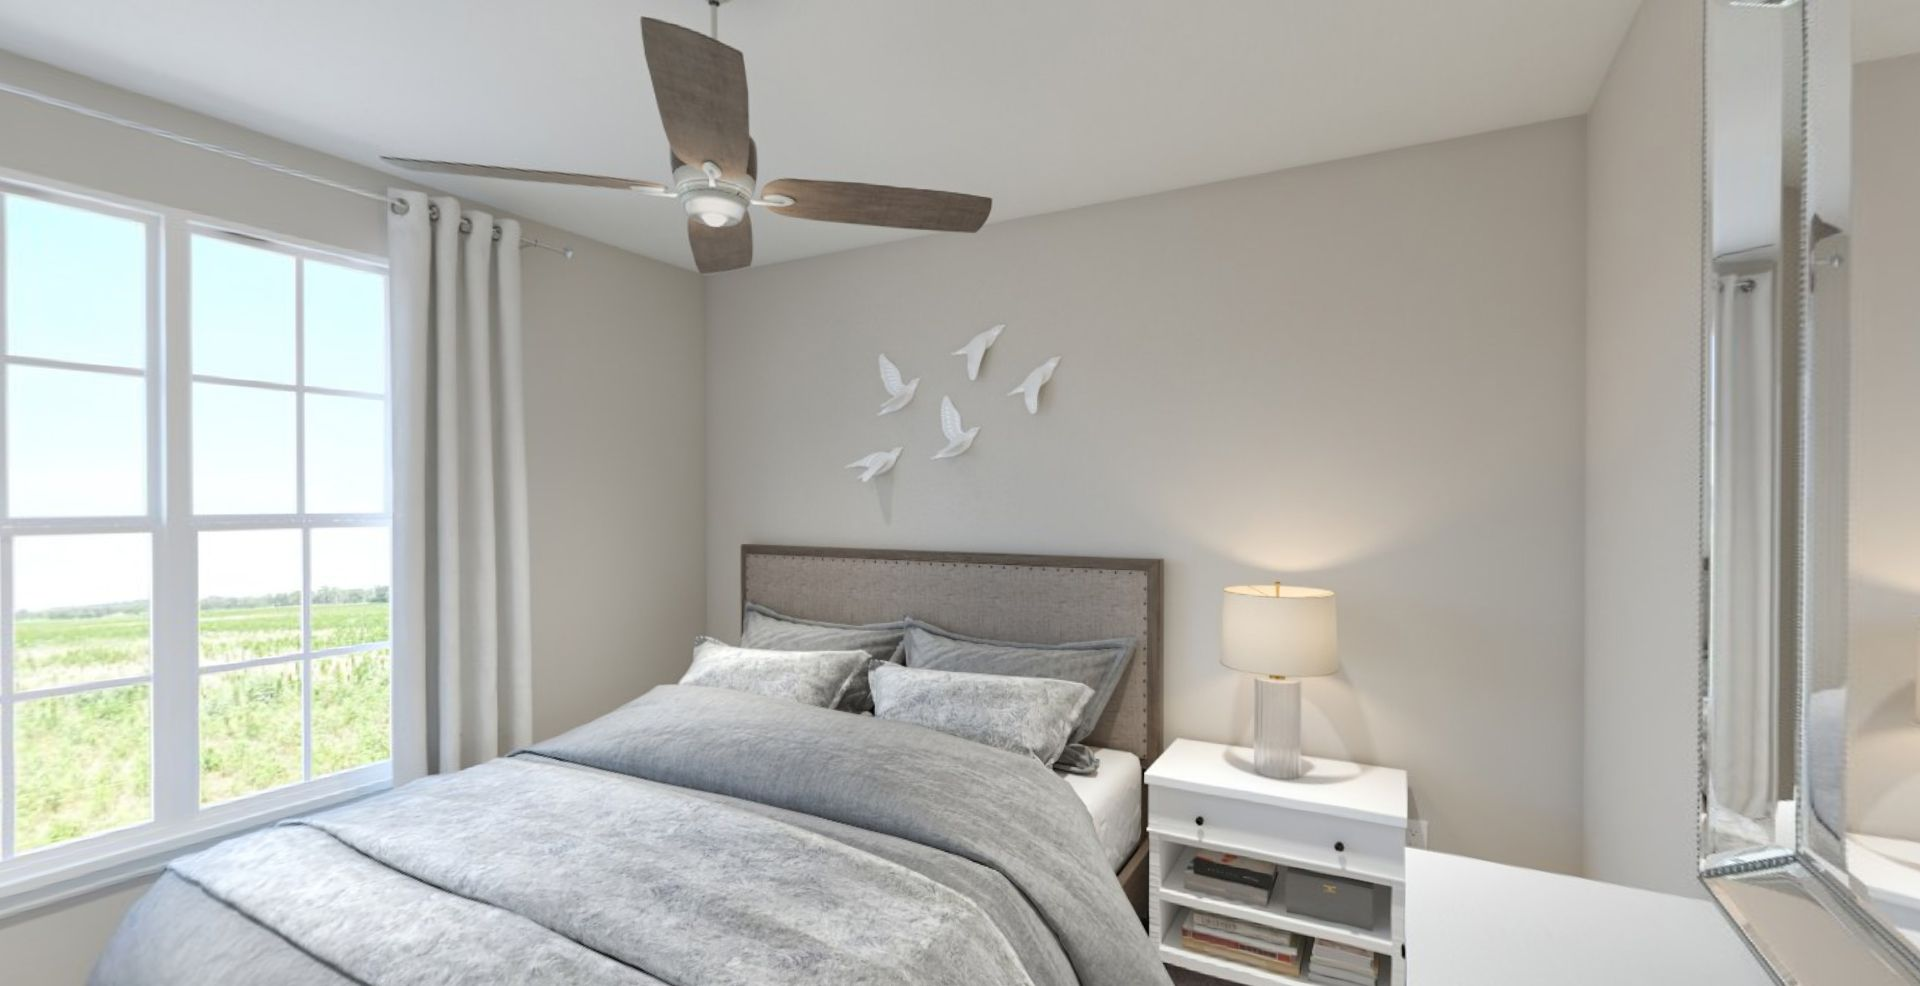 Bedroom featured in the Sonata By Olthof Homes in Indianapolis, IN